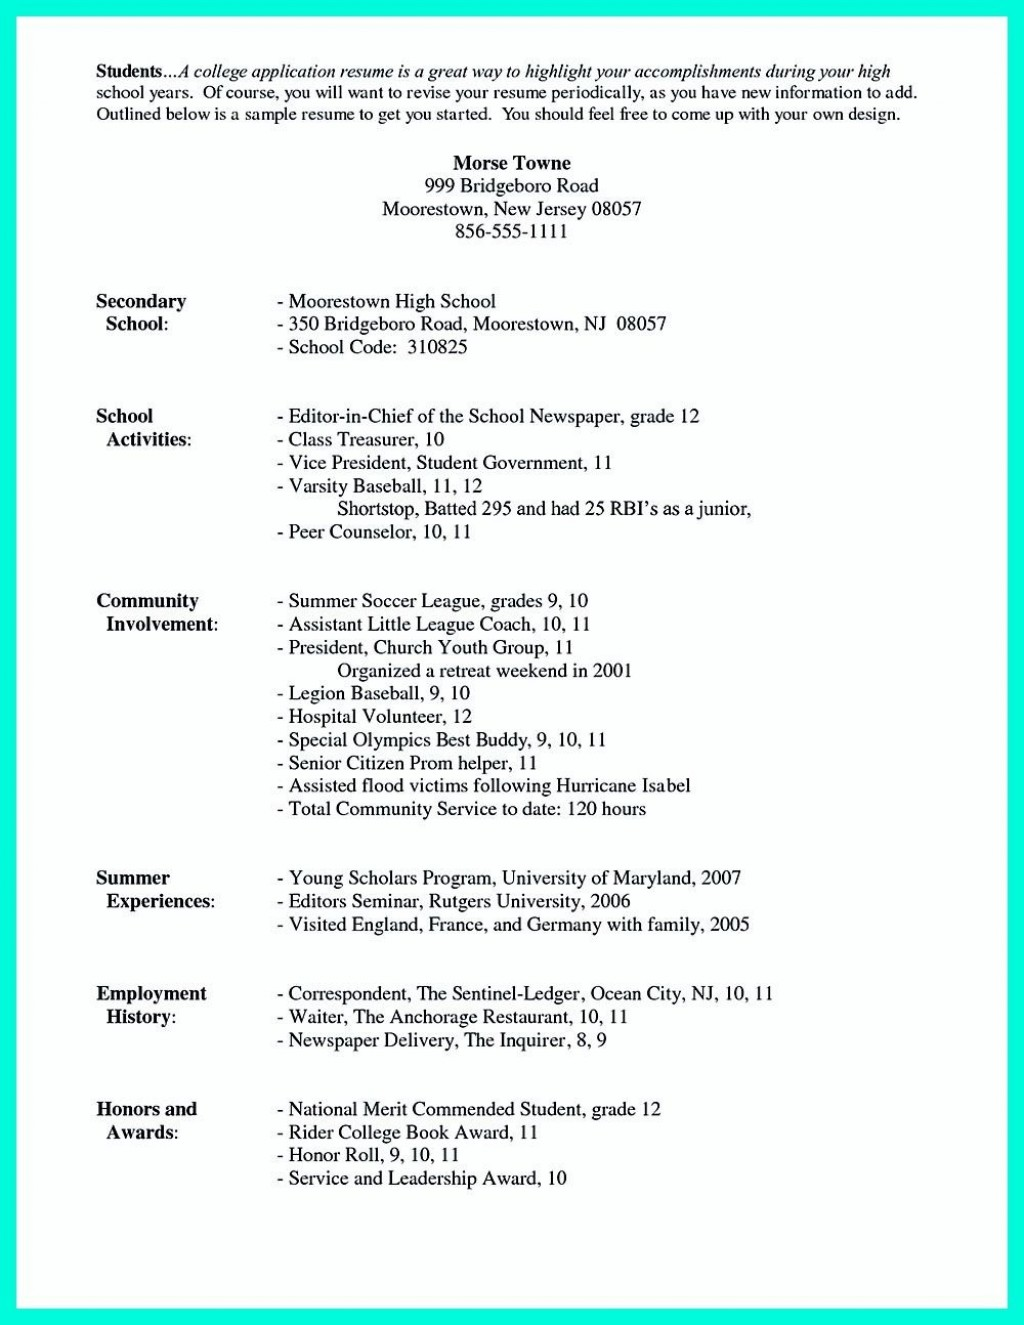 003 Awful College Admission Resume Template Sample  Microsoft Word Application DownloadLarge